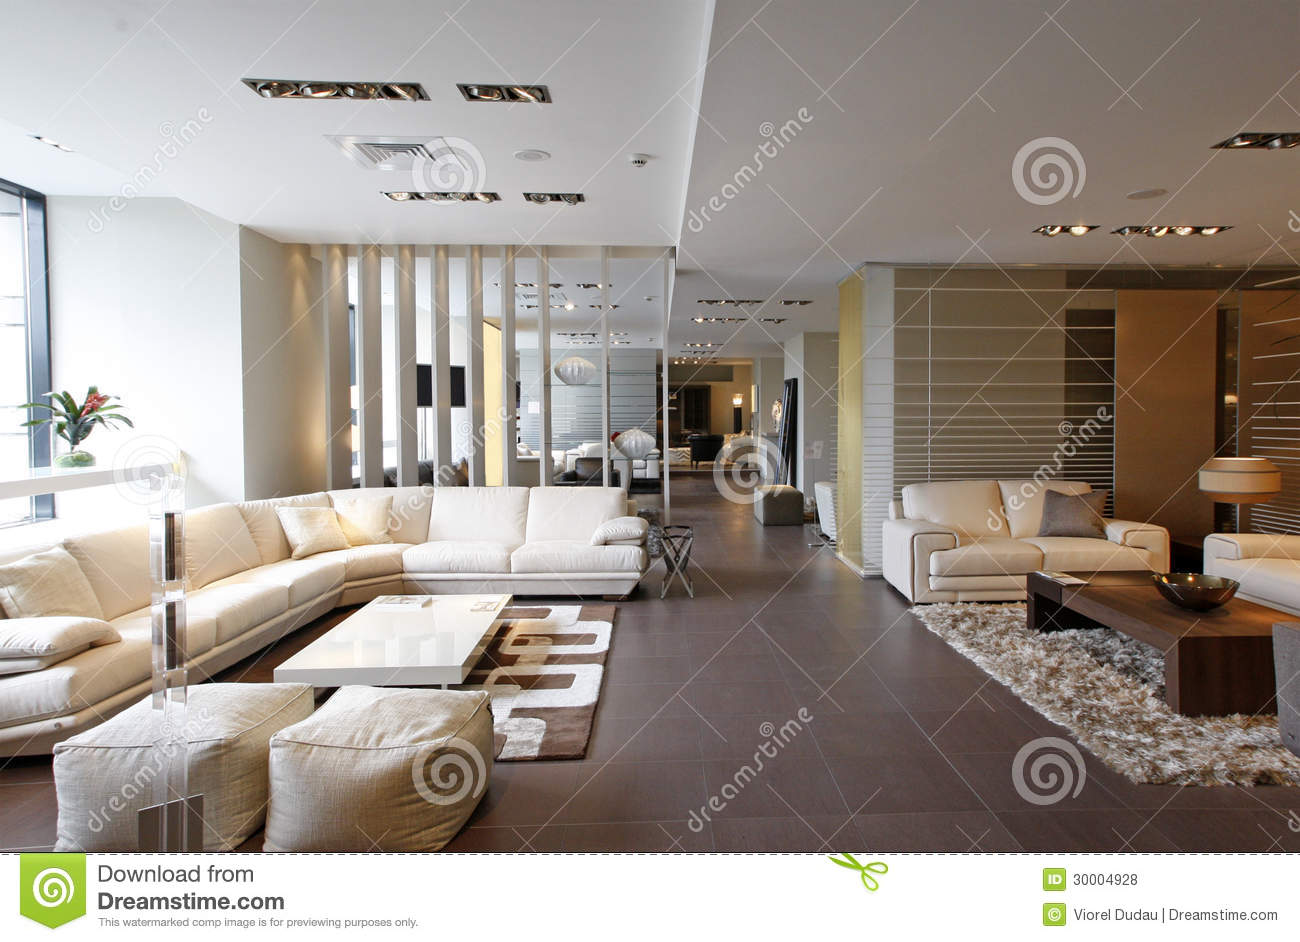 Stupendous Living Room Sets Stock Photo Image Of Store Hall Interior Download Free Architecture Designs Pushbritishbridgeorg